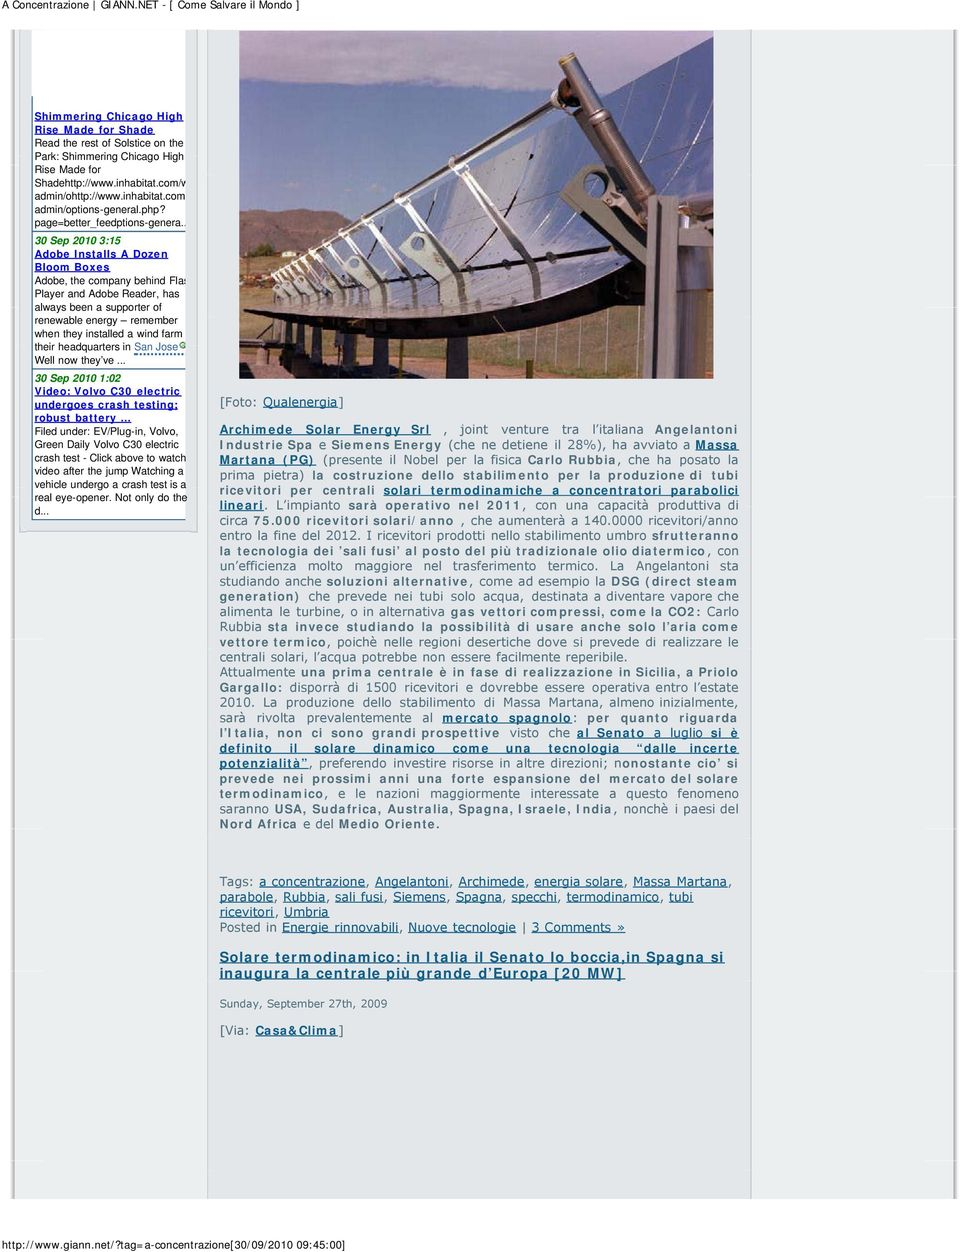 . 30 Sep 2010 3:15 Adobe Installs A Dozen Bloom Boxes Adobe, the company behind Flas Player and Adobe Reader, has always been a supporter of renewable energy remember when they installed a wind farm